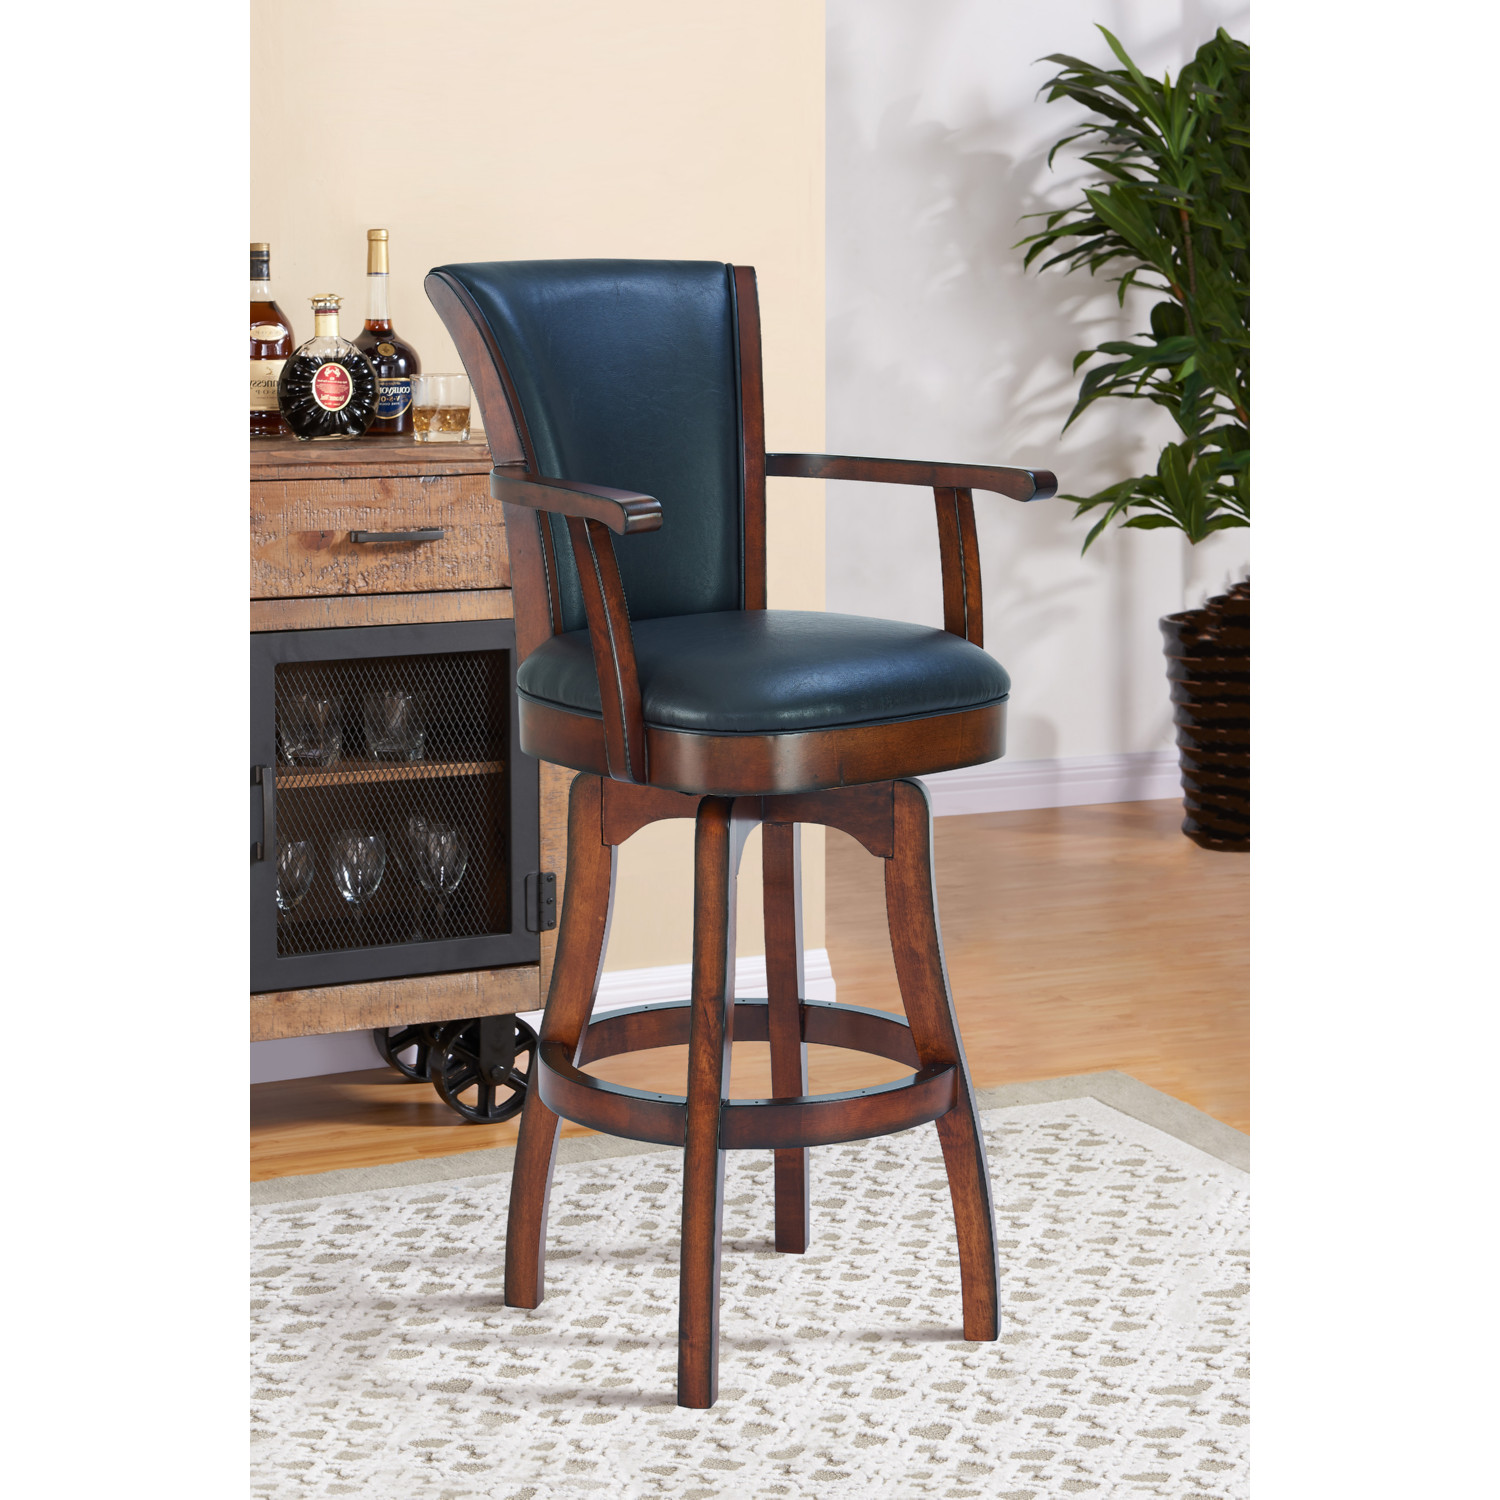 Astonishing Raleigh Arm 26 Swivel Counter Stool In Rustic Cordovan Brown Bonded Leather By Armen Living Ncnpc Chair Design For Home Ncnpcorg